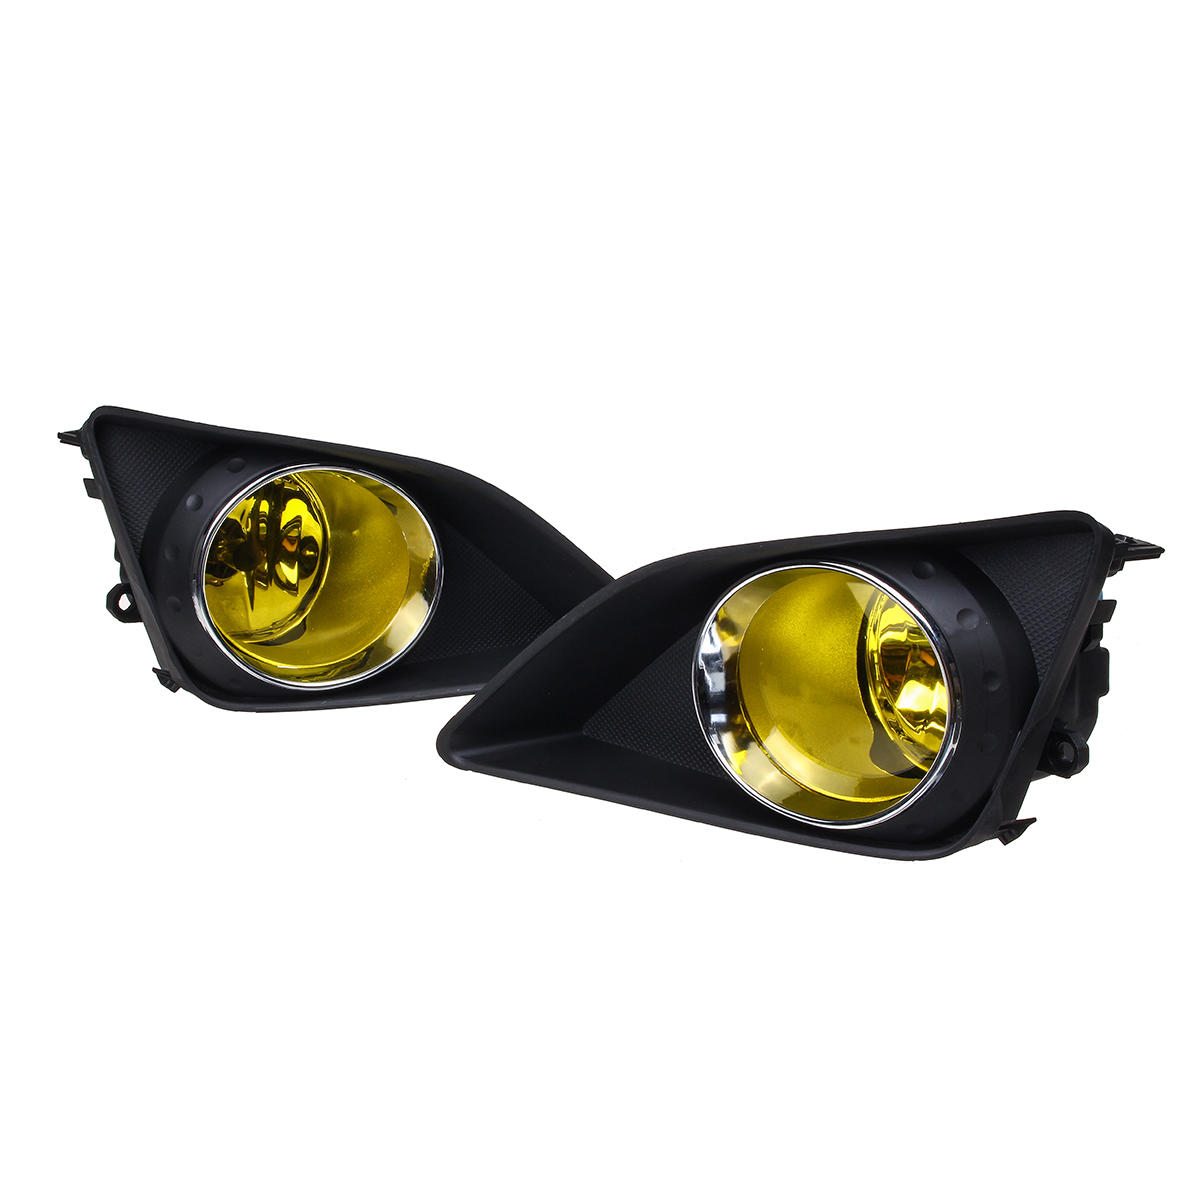 Car Front Bumper Fog Lights Lamp with Cover Bulbs Harness Kit For Toyota Corolla 2009-2010